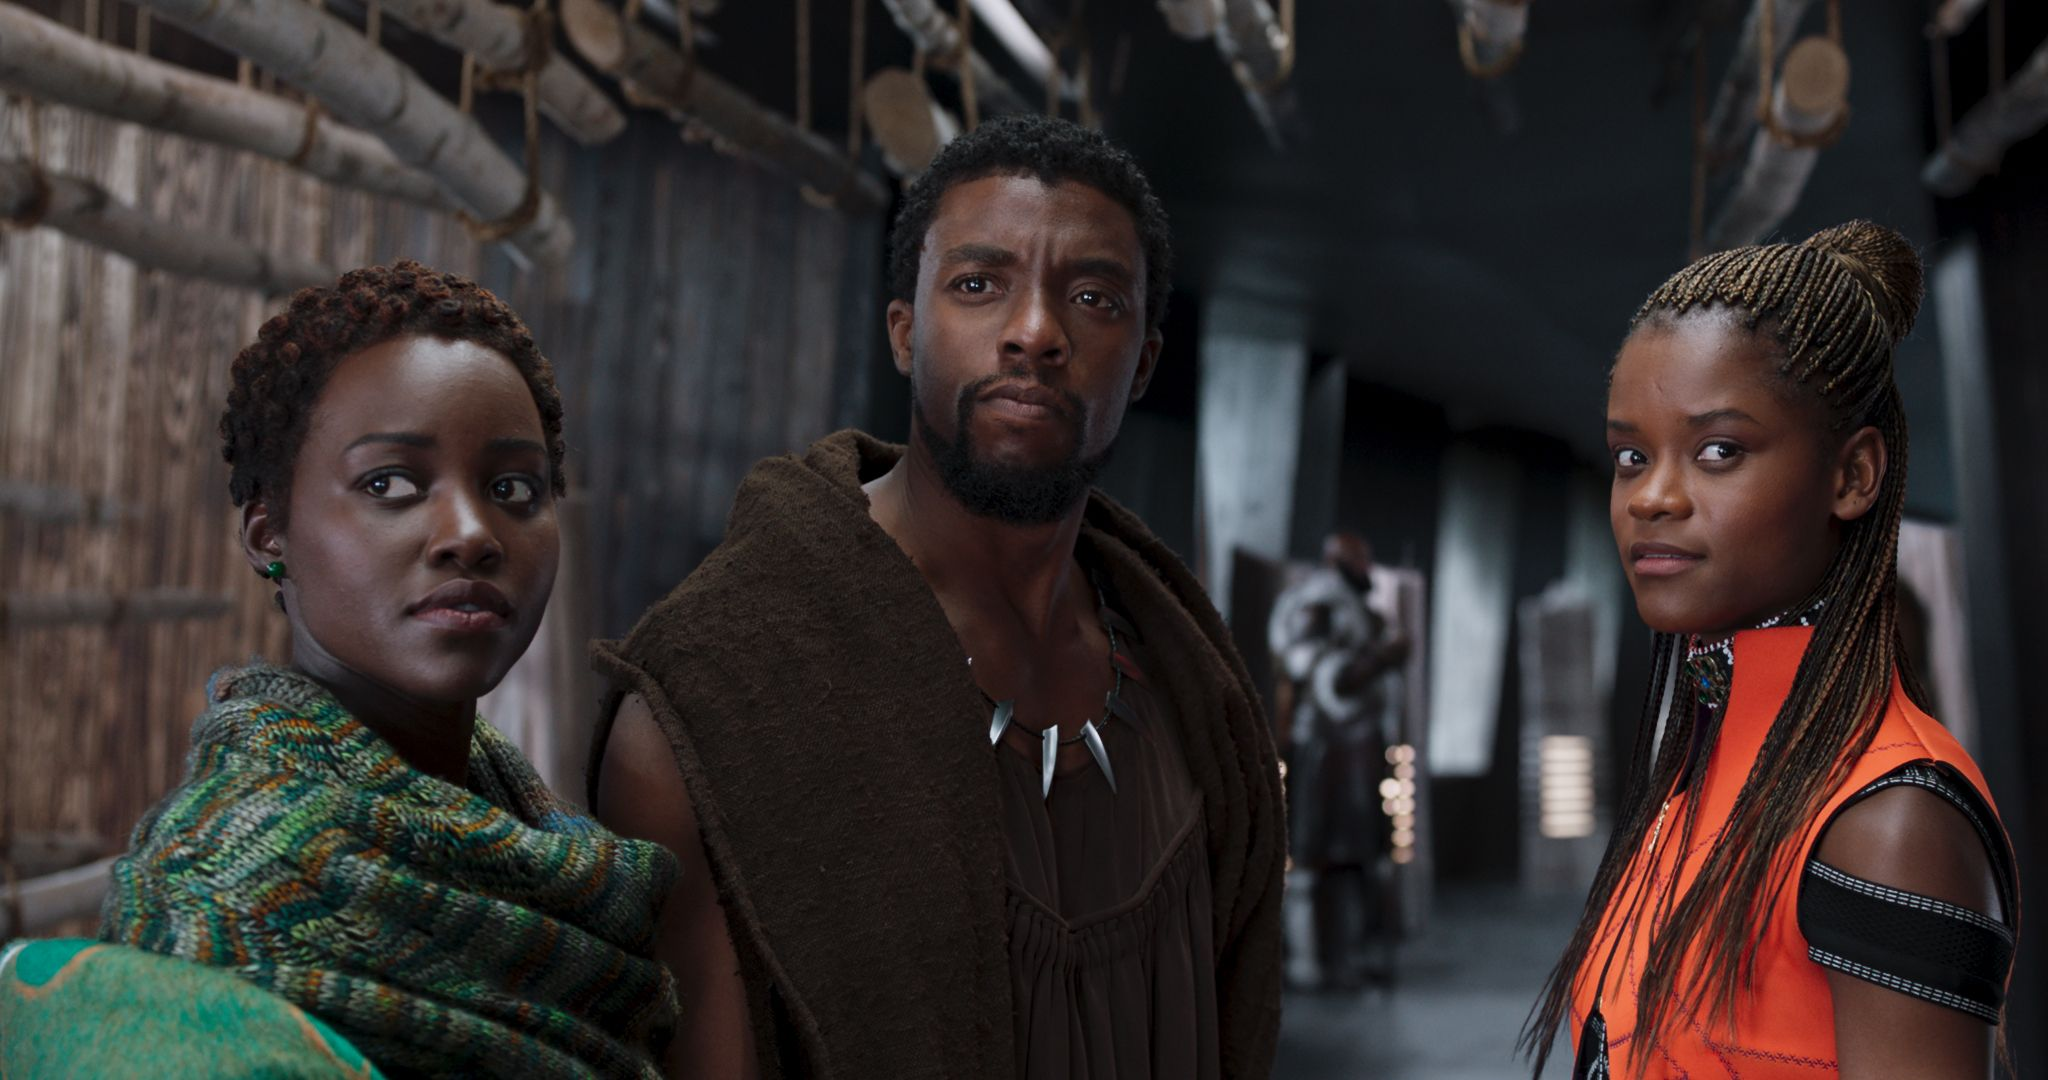 'Black Panther' roars past $700 million worldwide in week two